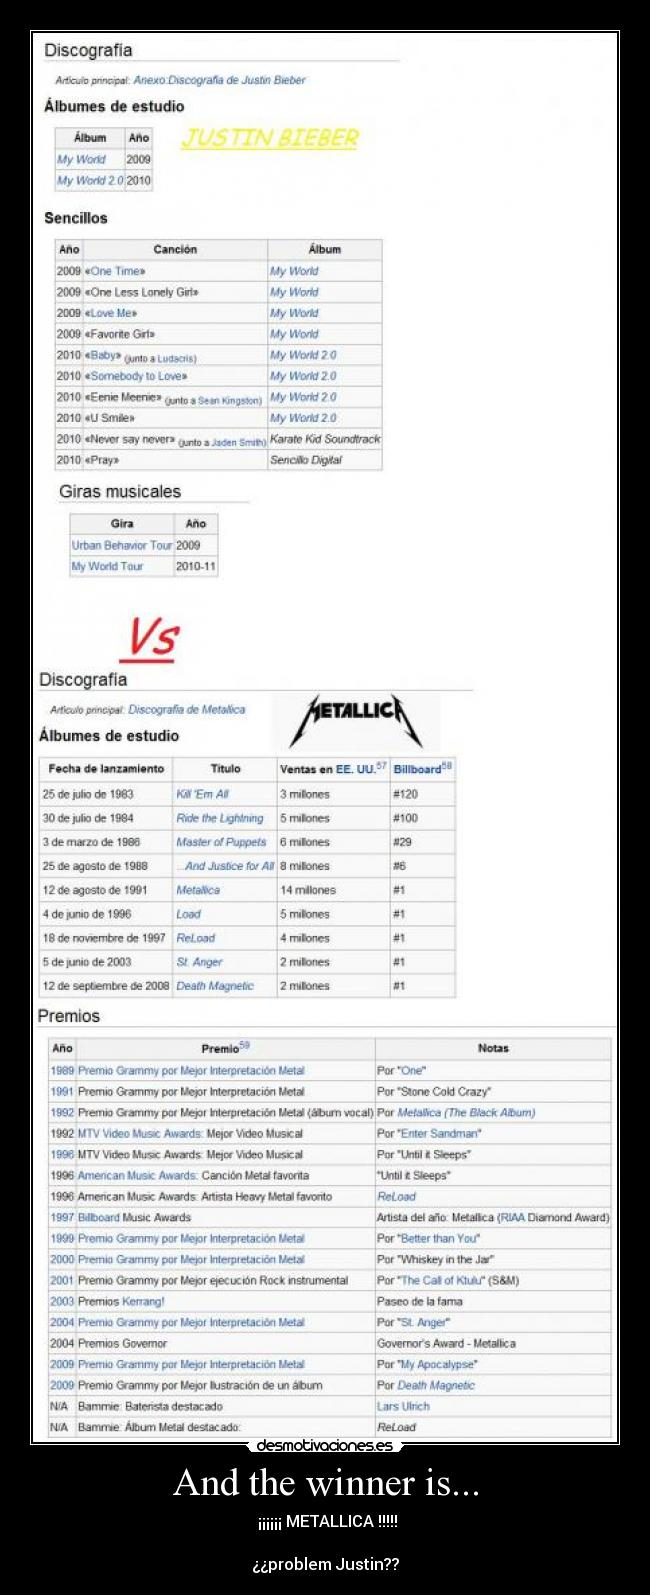 And the winner is... -  ¡¡¡¡¡¡ METALLICA !!!!!  ¿¿problem Justin??